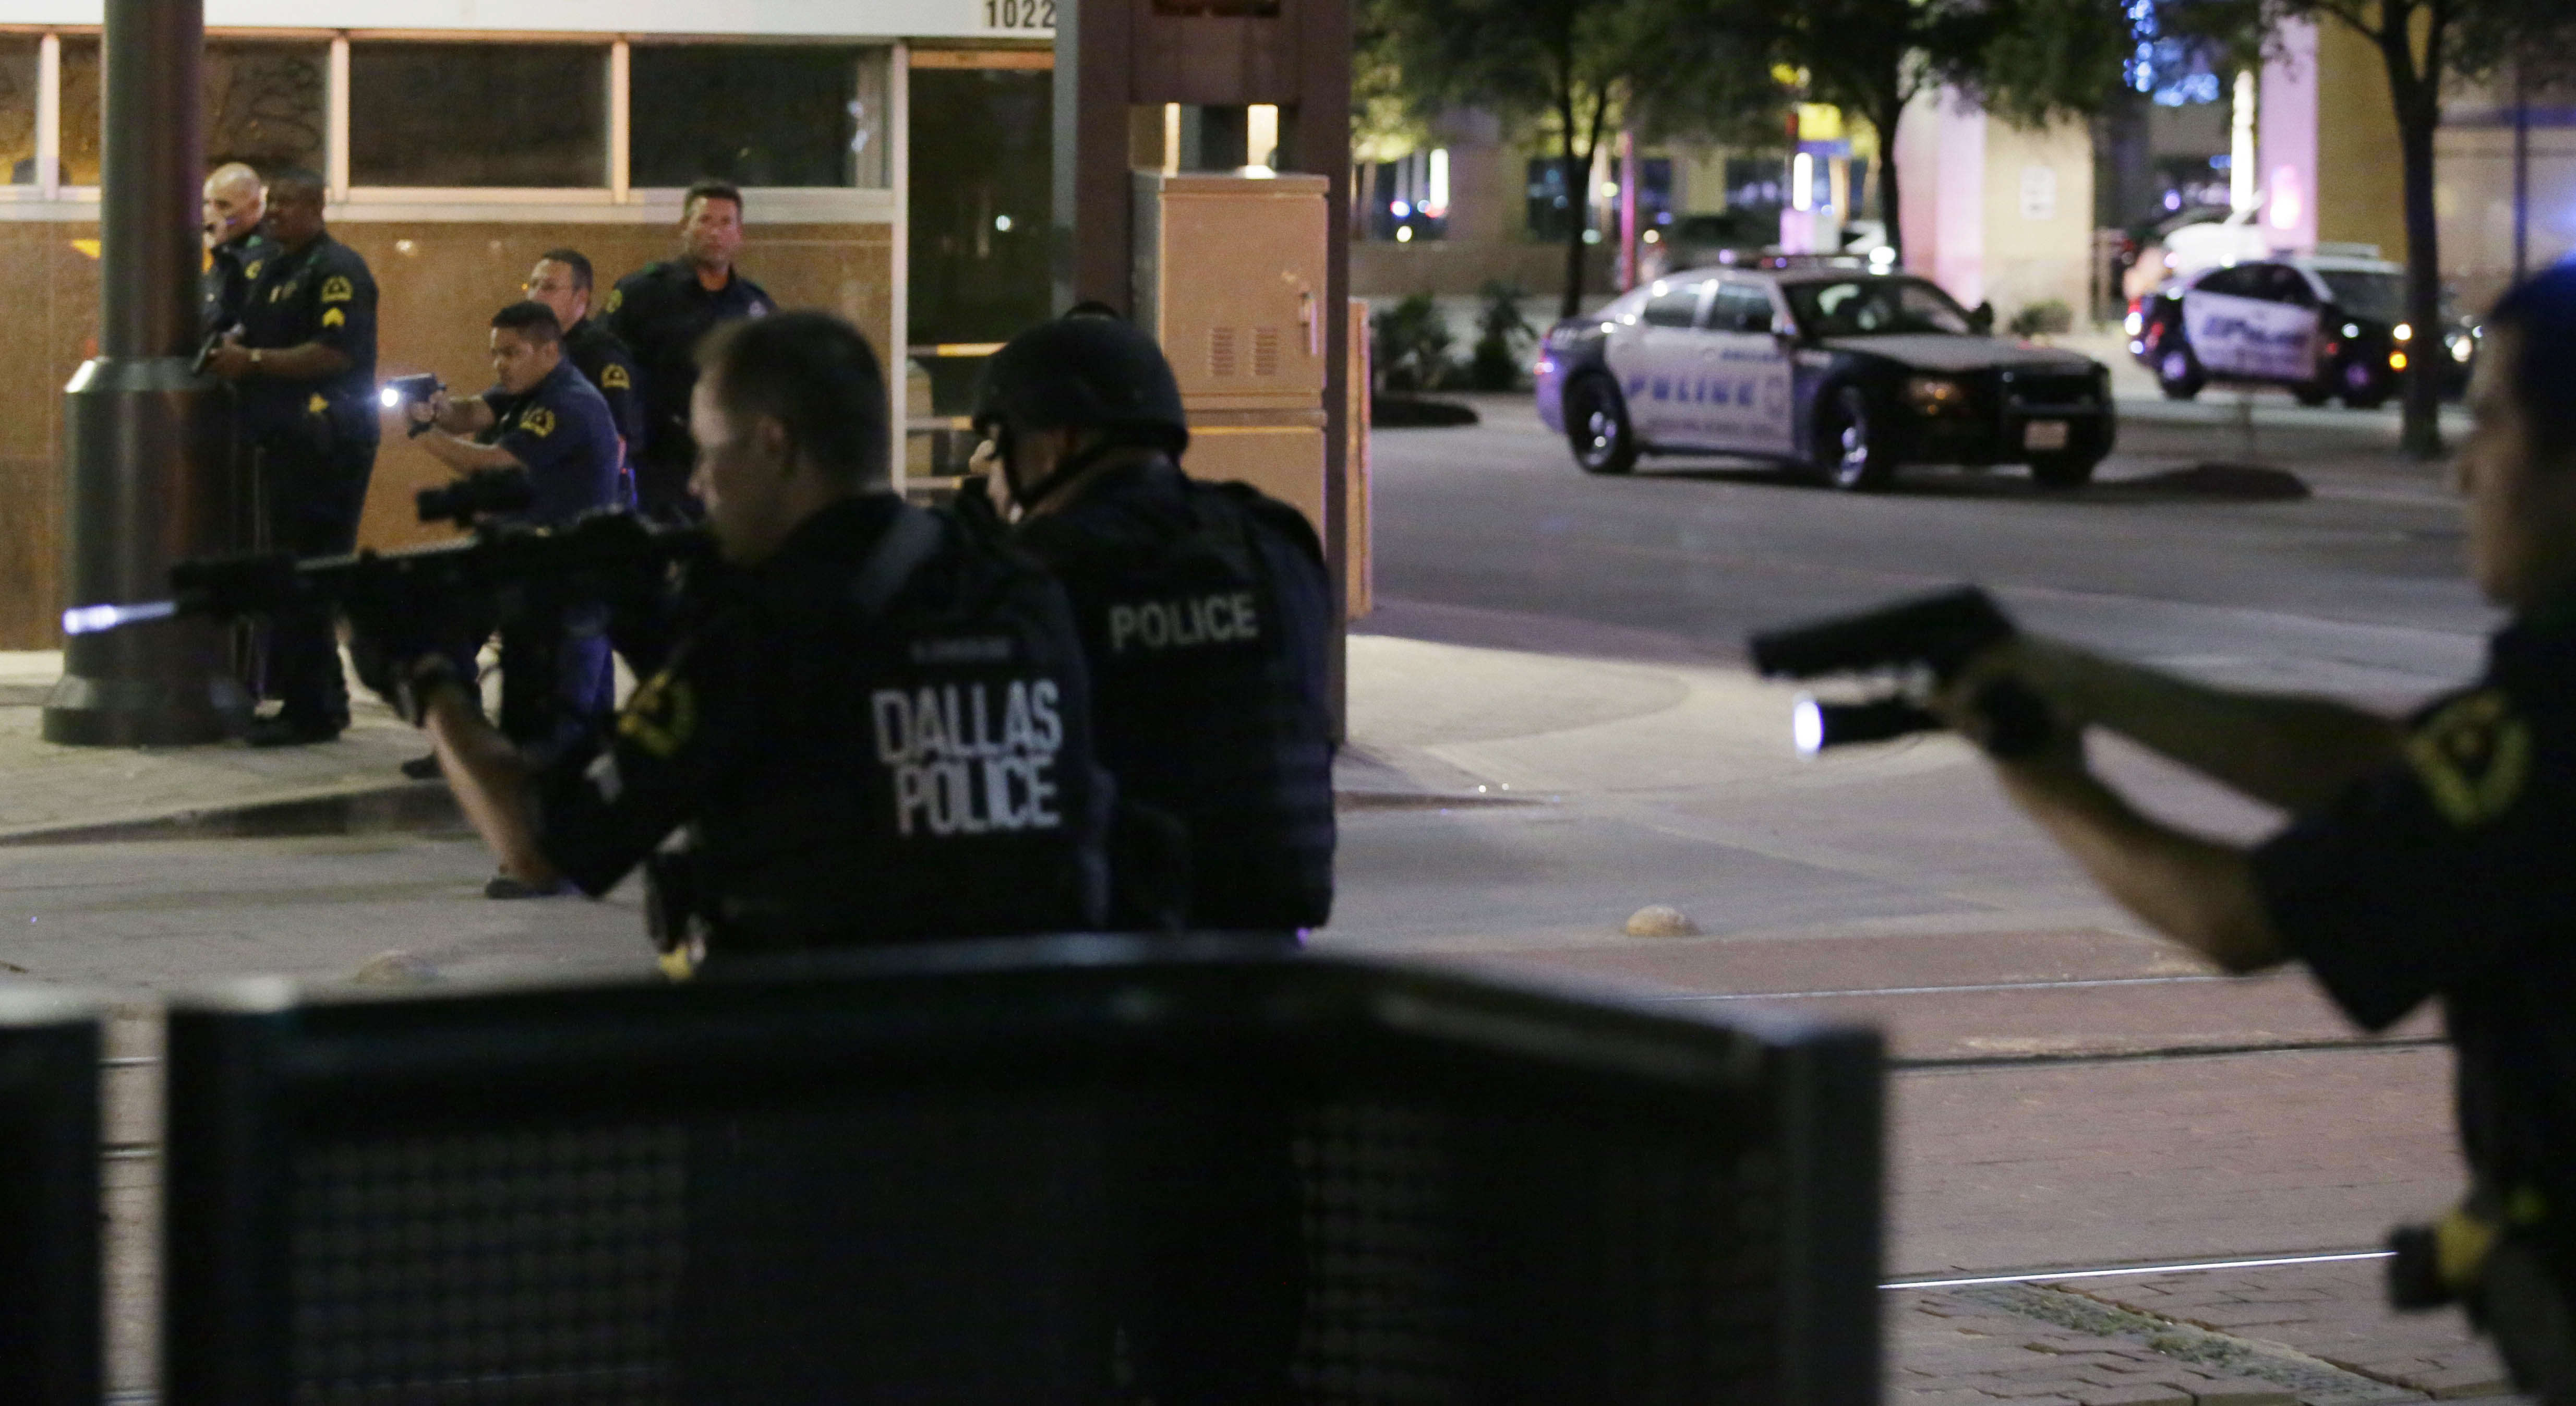 There Have Been More Attacks On Police In Wake Of Dallas dallas1